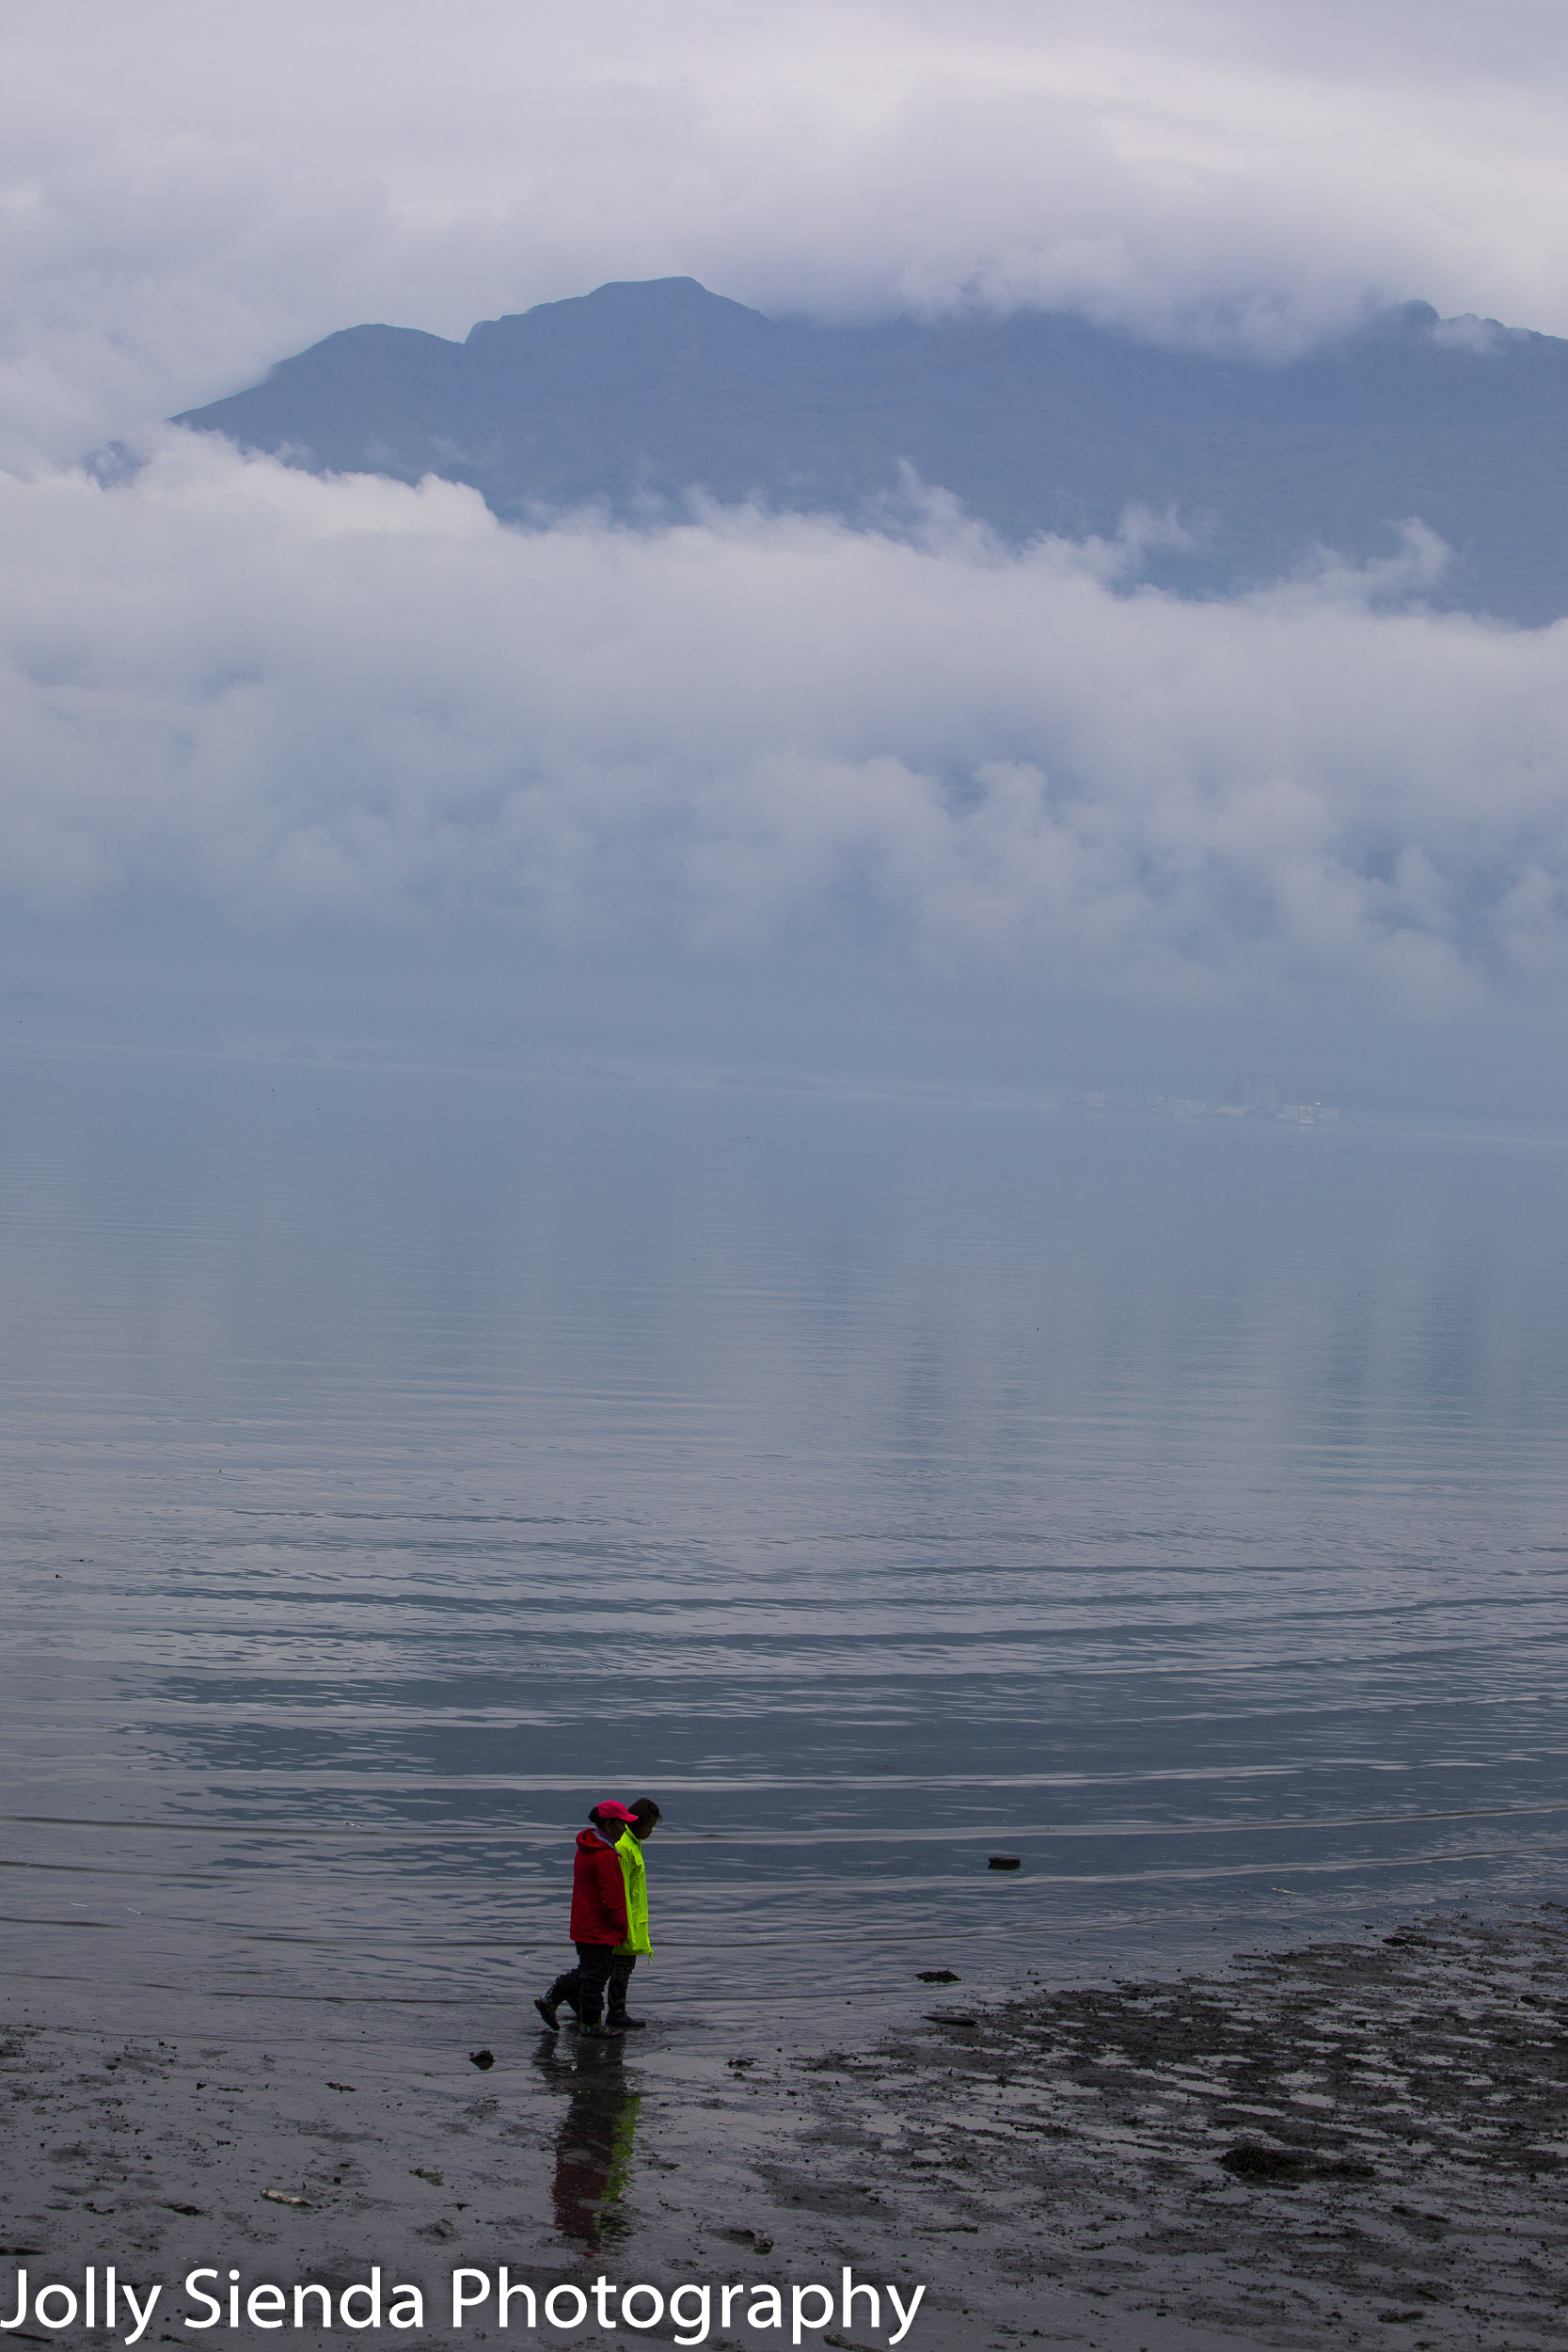 People walking in the Prince William Sound at low tide